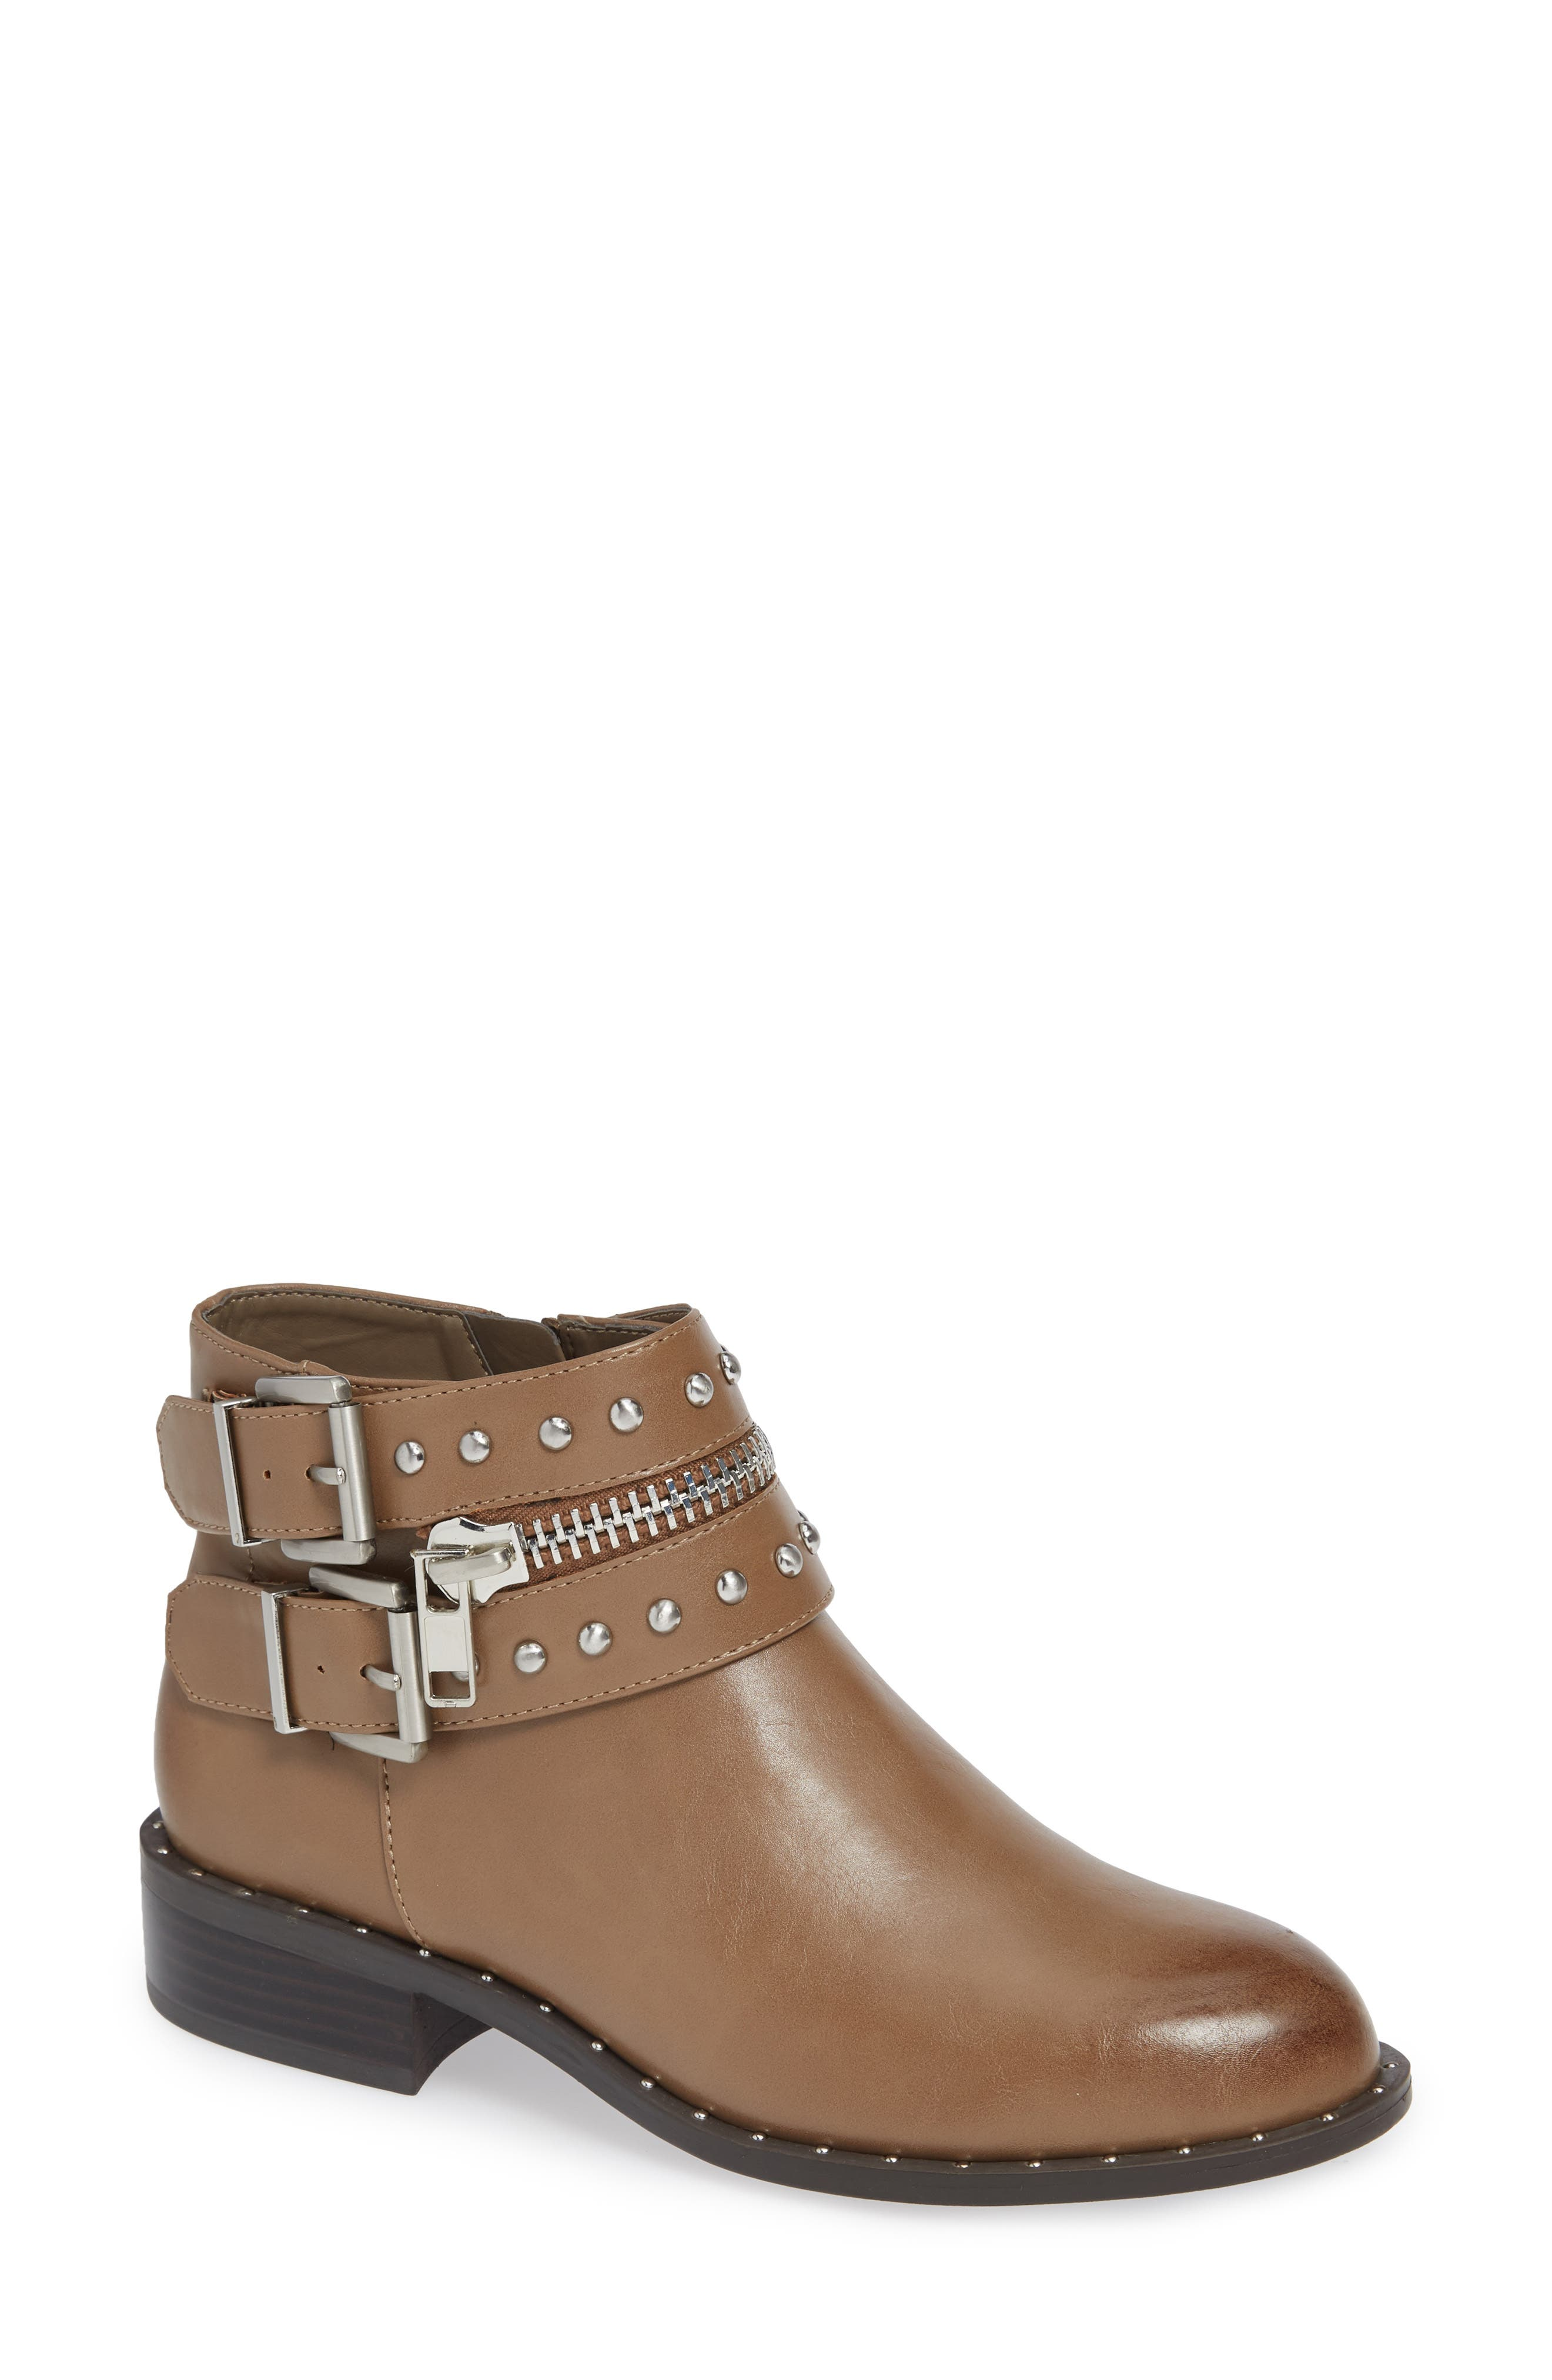 Charles By Charles David Thief Studded Bootie, Beige